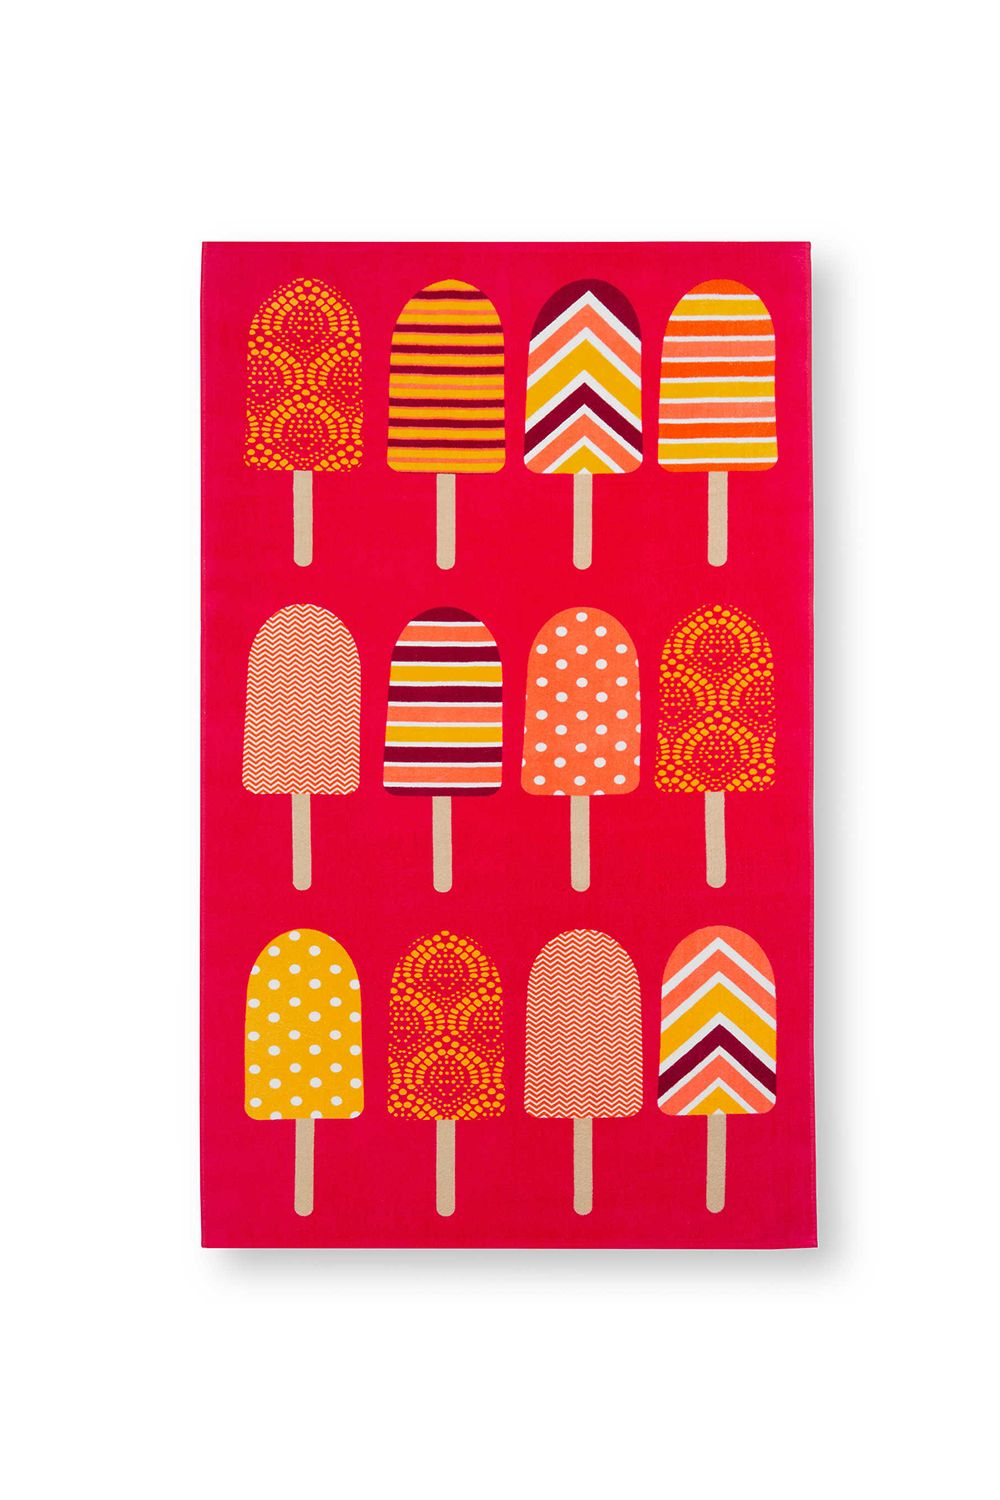 "<p><span>Popsicles for peak summer vibes and it won't set you back more than one single Hamilton. </span></p><p><strong data-redactor-tag=""strong"">Popsicle Beach Towel, $10; <a href=""https://www.bedbathandbeyond.com/store/product/popsicle-beach-towel/1043989591?Keyword=beach+towel"" target=""_blank"" data-tracking-id=""recirc-text-link"">bedbathandbeyond.com</a>.</strong></p>"